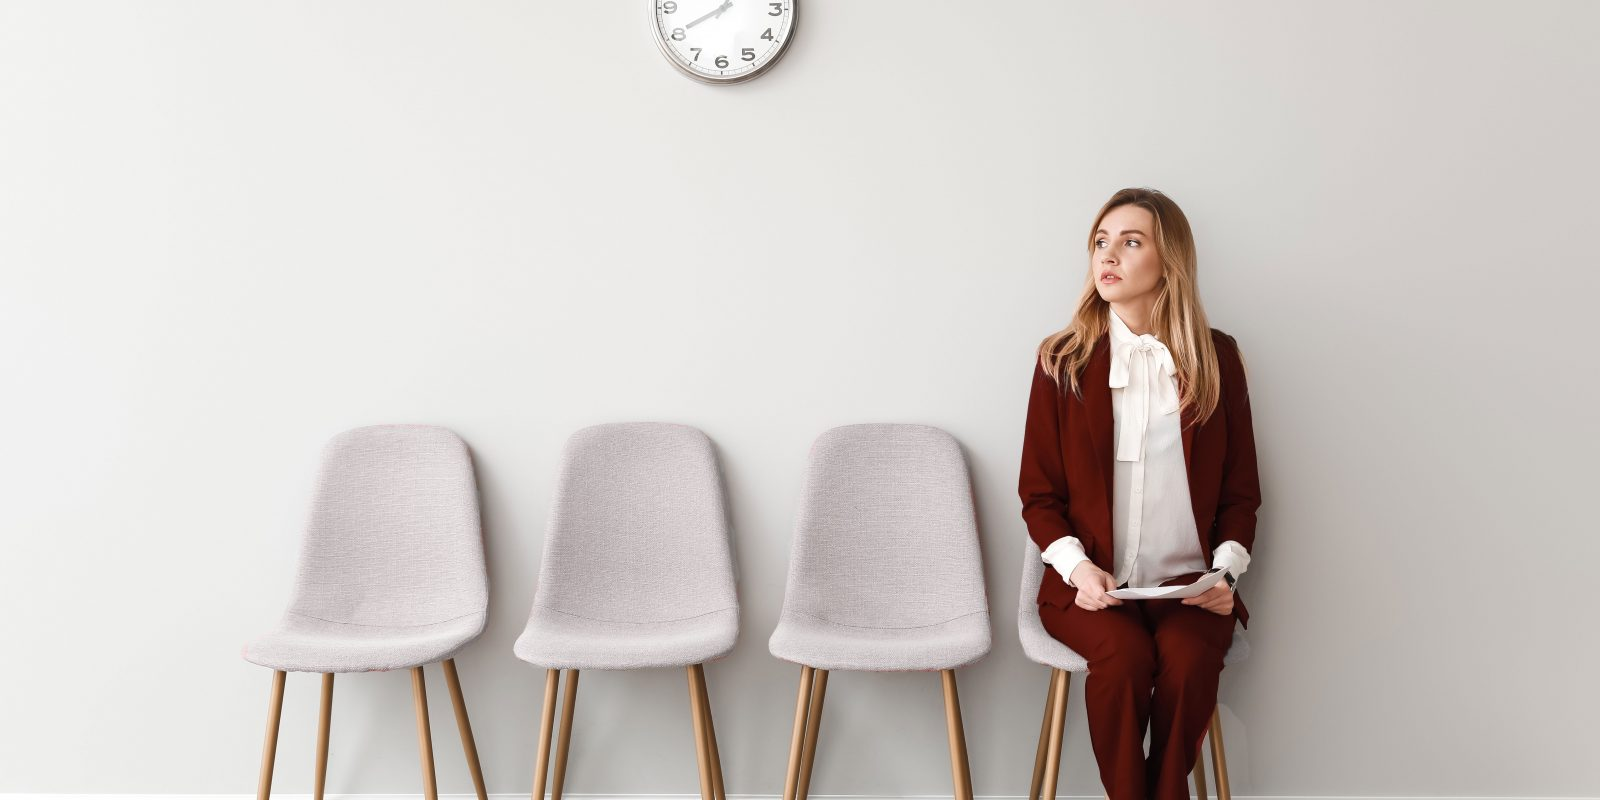 Nervous for Your Big Interview? Here Are Some Ways to Keep Yourself Calm Before the Big Day